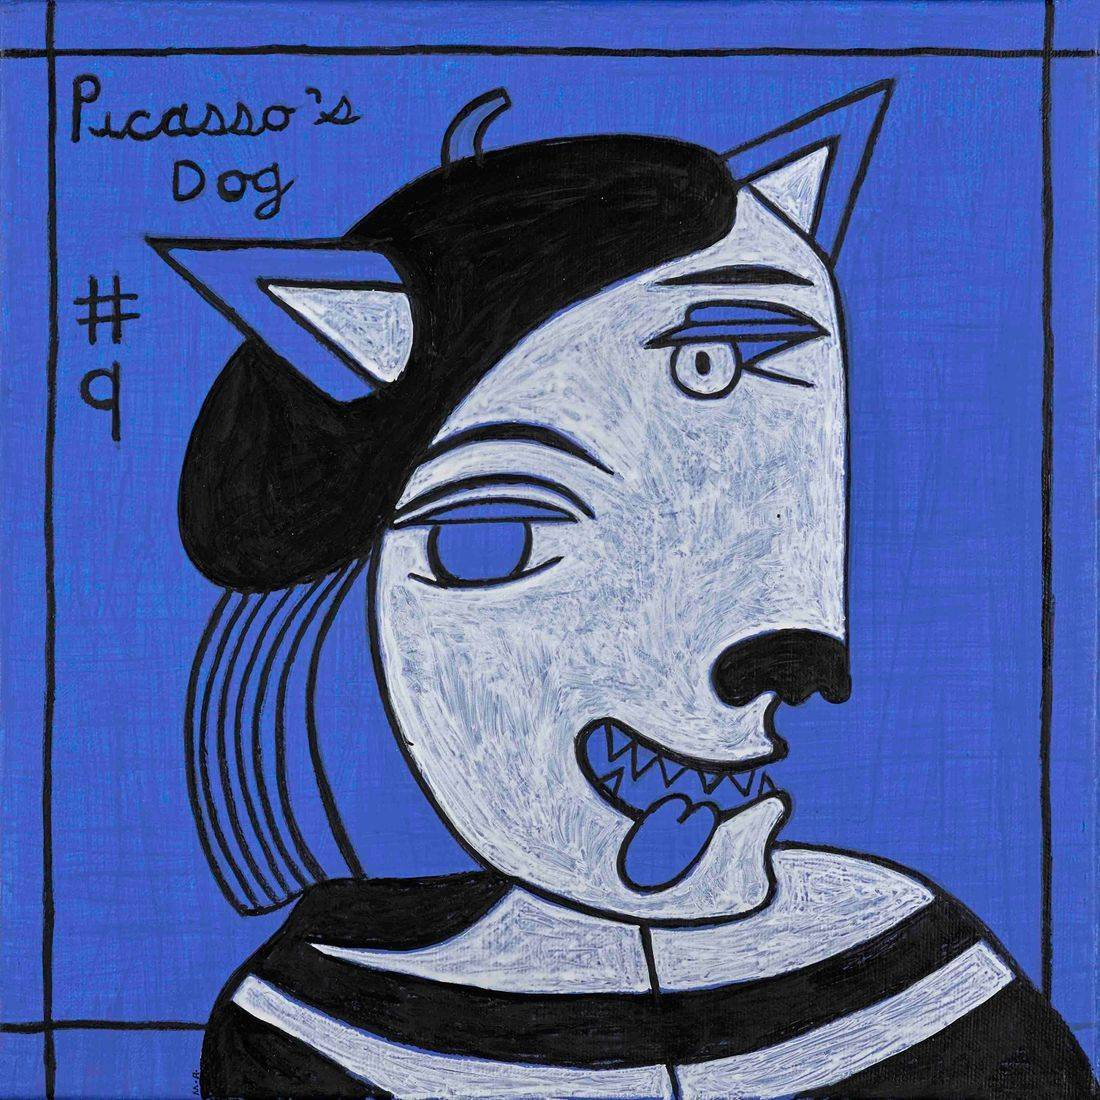 Picasso, Picasso's Dogs, Artists, Artists' Dogs, Beret, Picasso's Style of Dress, Anthropomorphism, Picasso's Blue Period